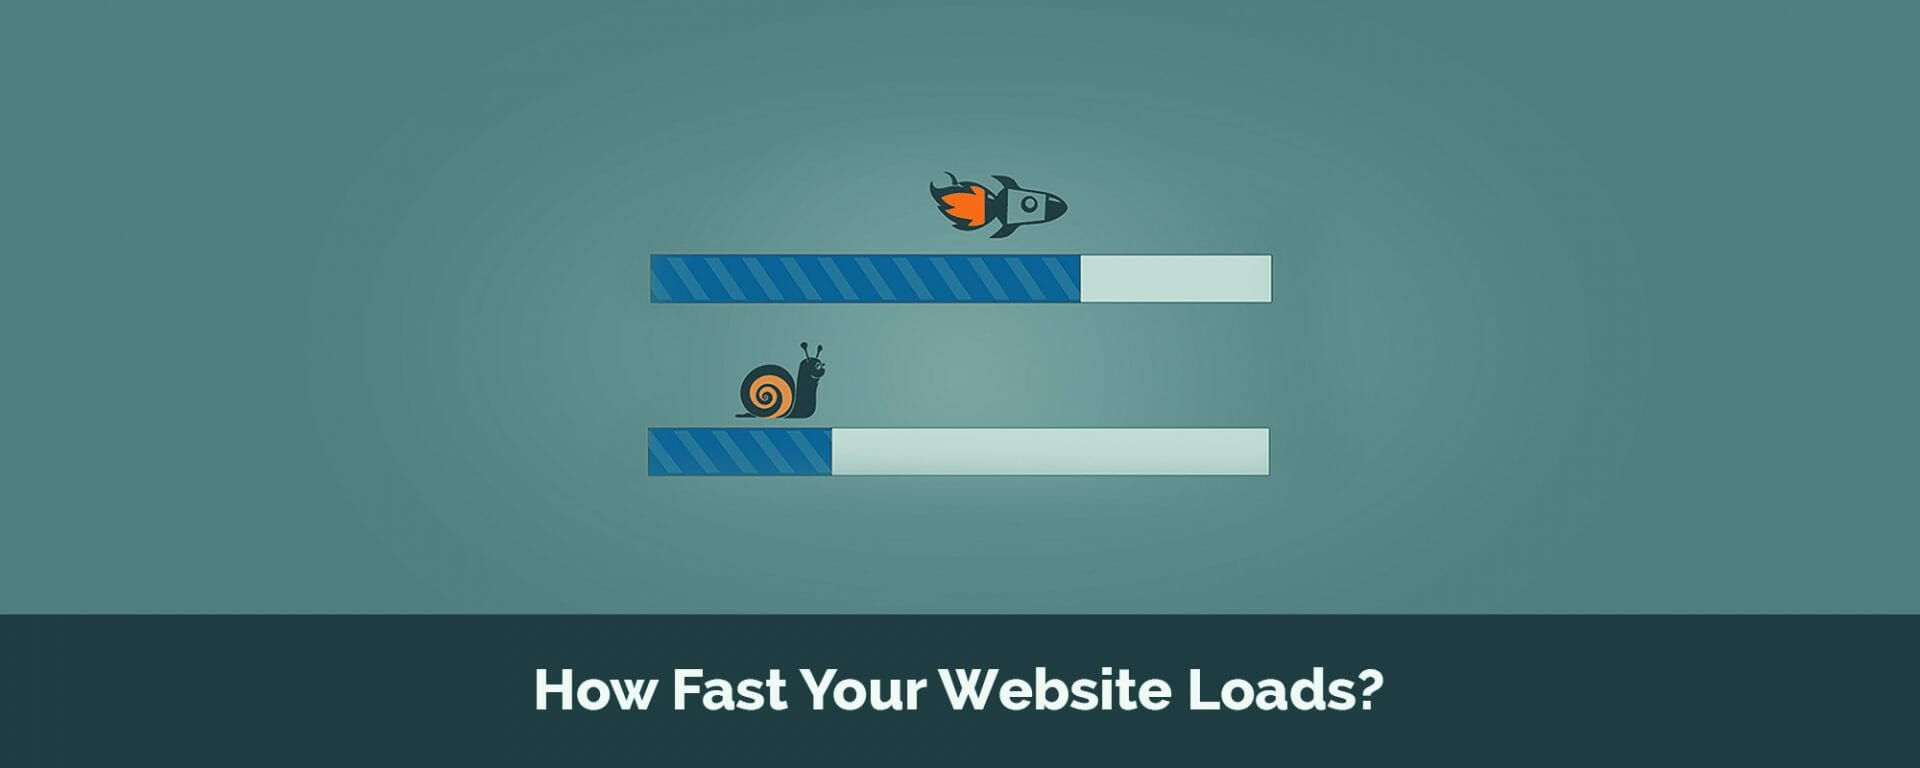 how to grow a chiropractic practice fast website loading speed